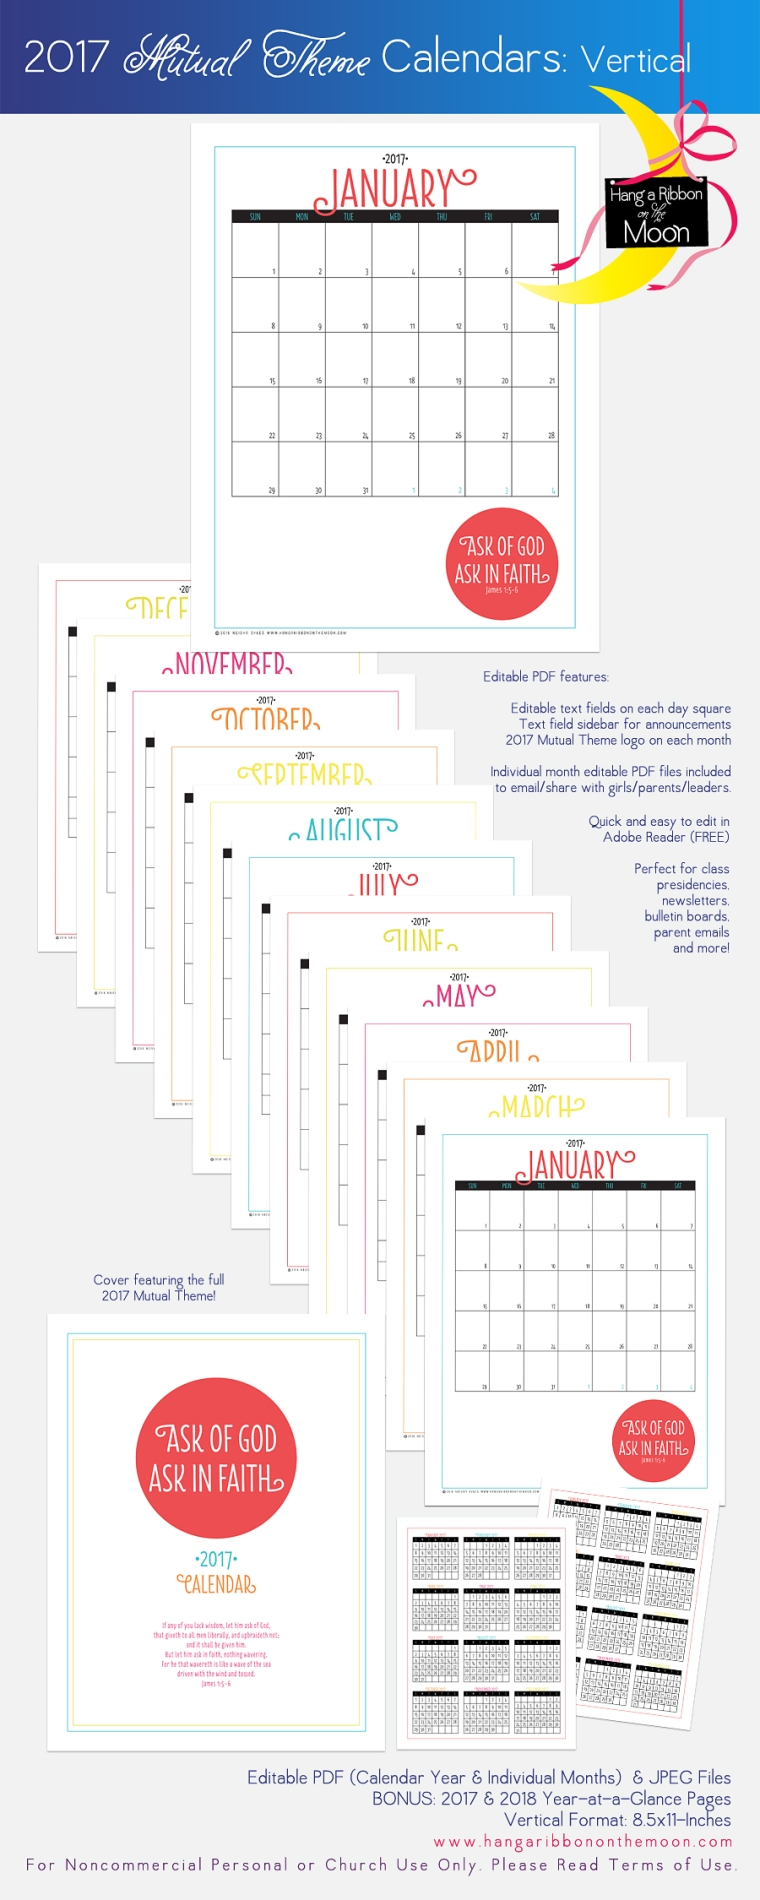 2017 Mutual Theme Calendars. Editable PDF. Free download!